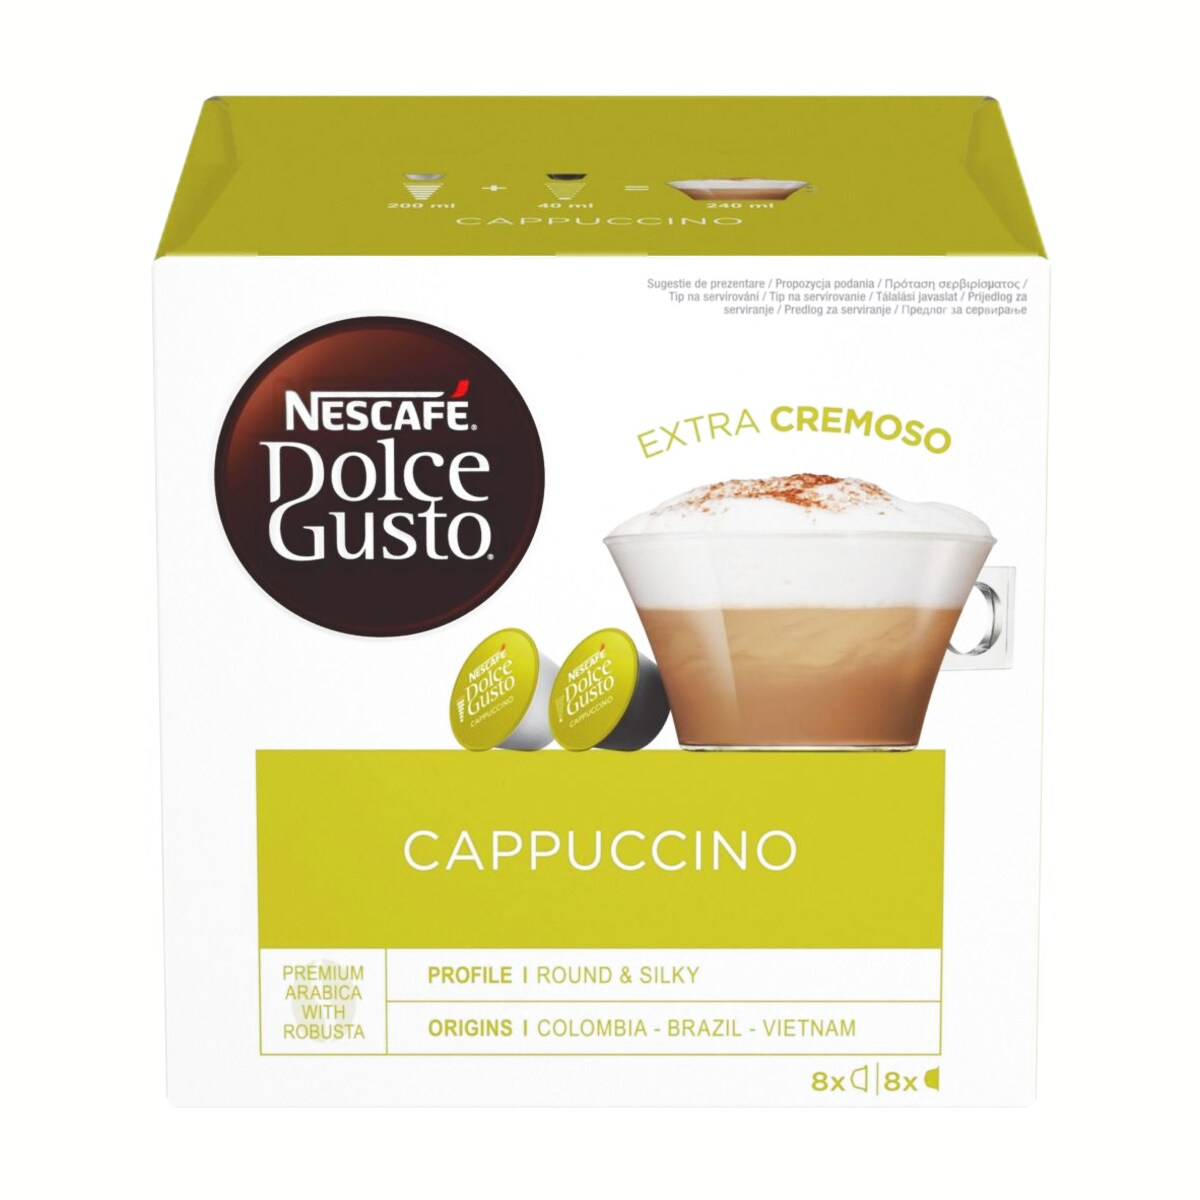 Nescafe Dolce Gusto Cappuccino κάψουλες